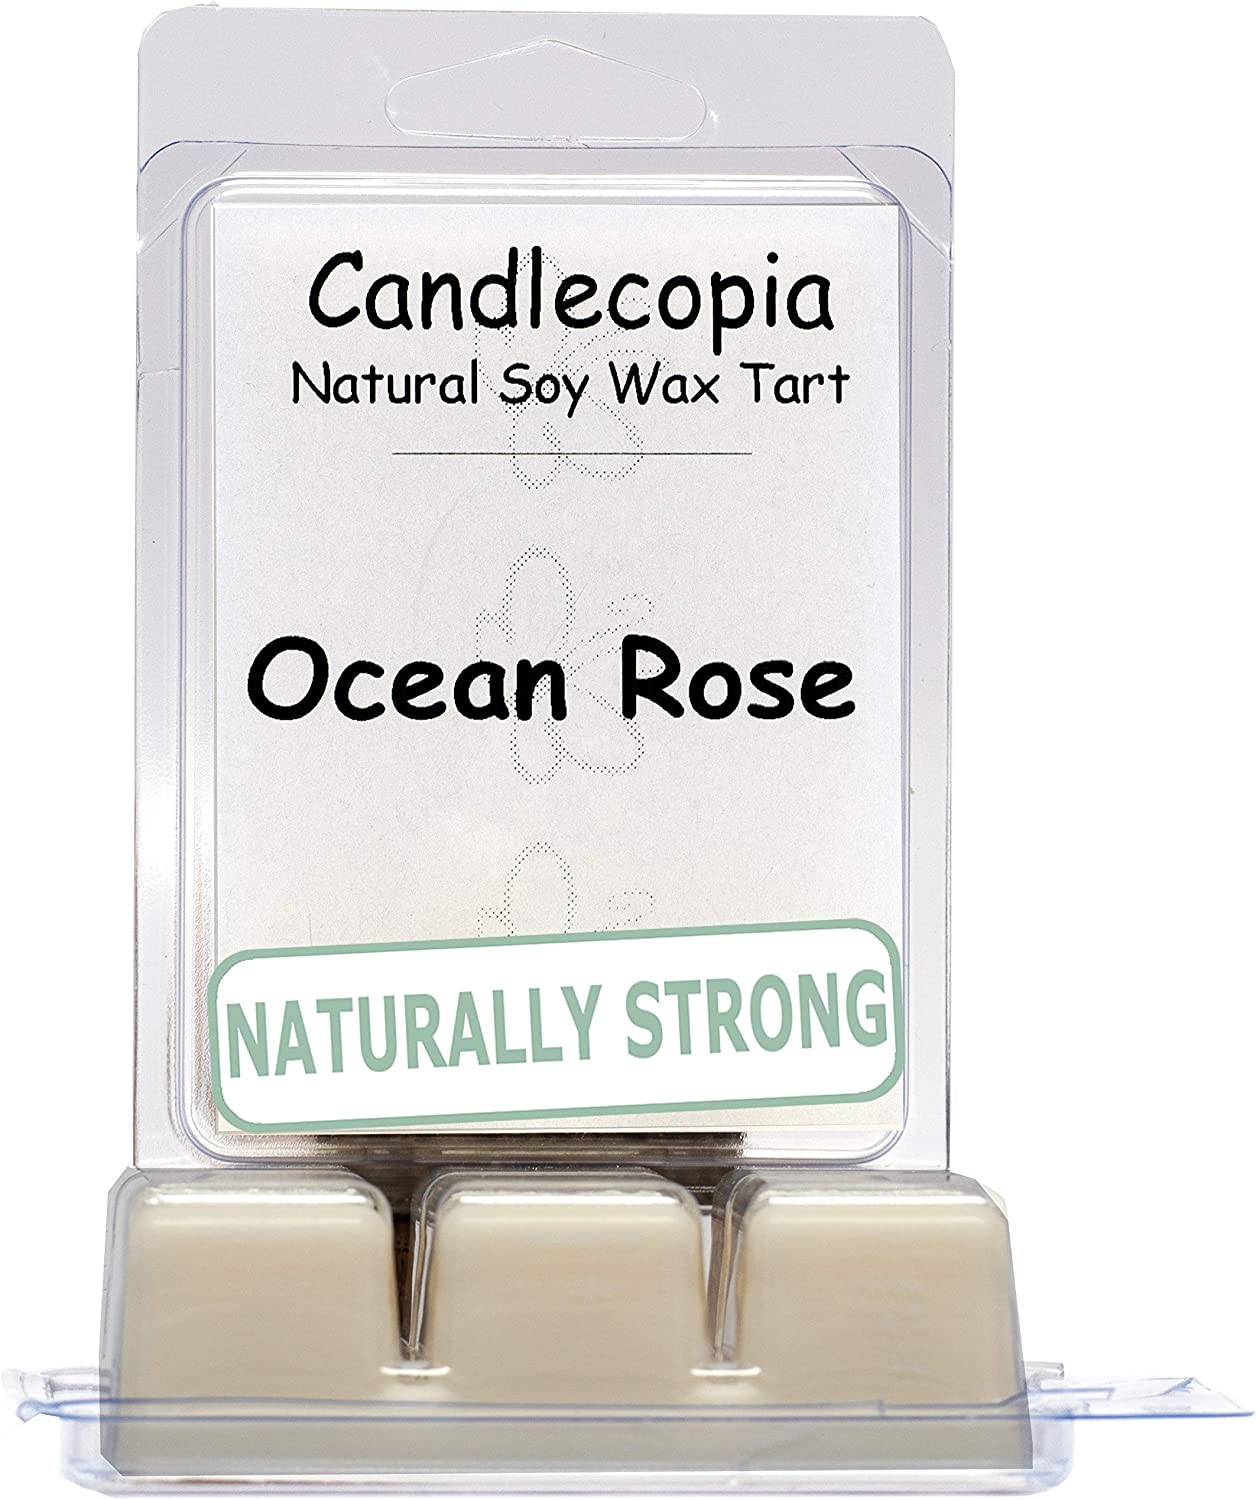 Candlecopia Ocean Rose Strongly Scented Hand Poured Vegan Wax Melts, 12 Scented Wax Cubes, 6.4 Ounces in 2 x 6-Packs